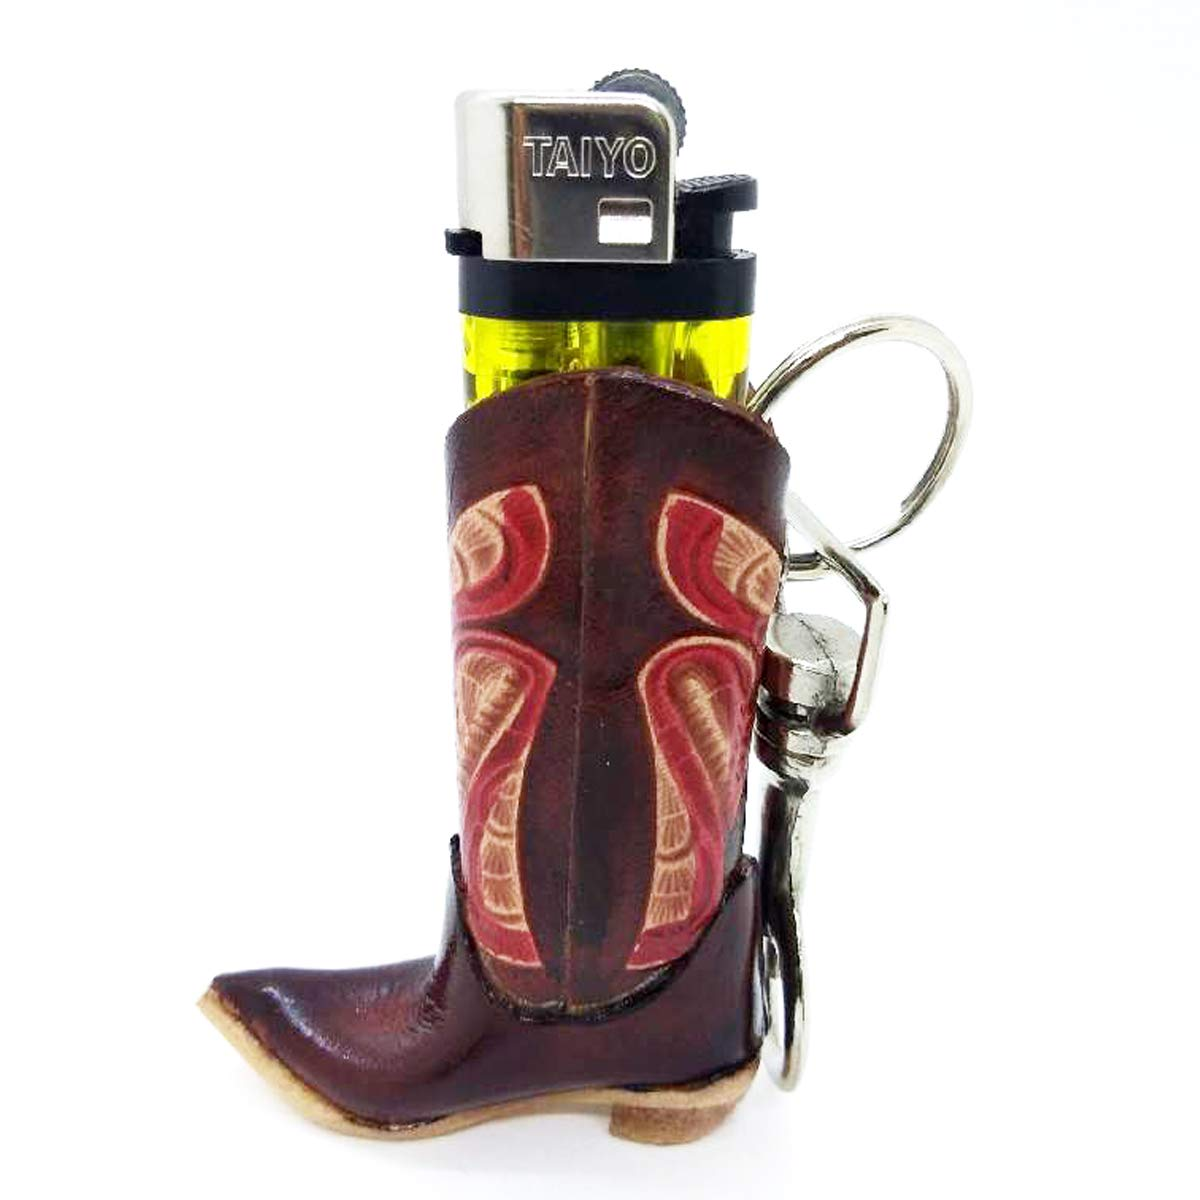 Leather Cowboy Boots Key Chain Shoes Idea Handcraft Keyring Fire Lighter Holders